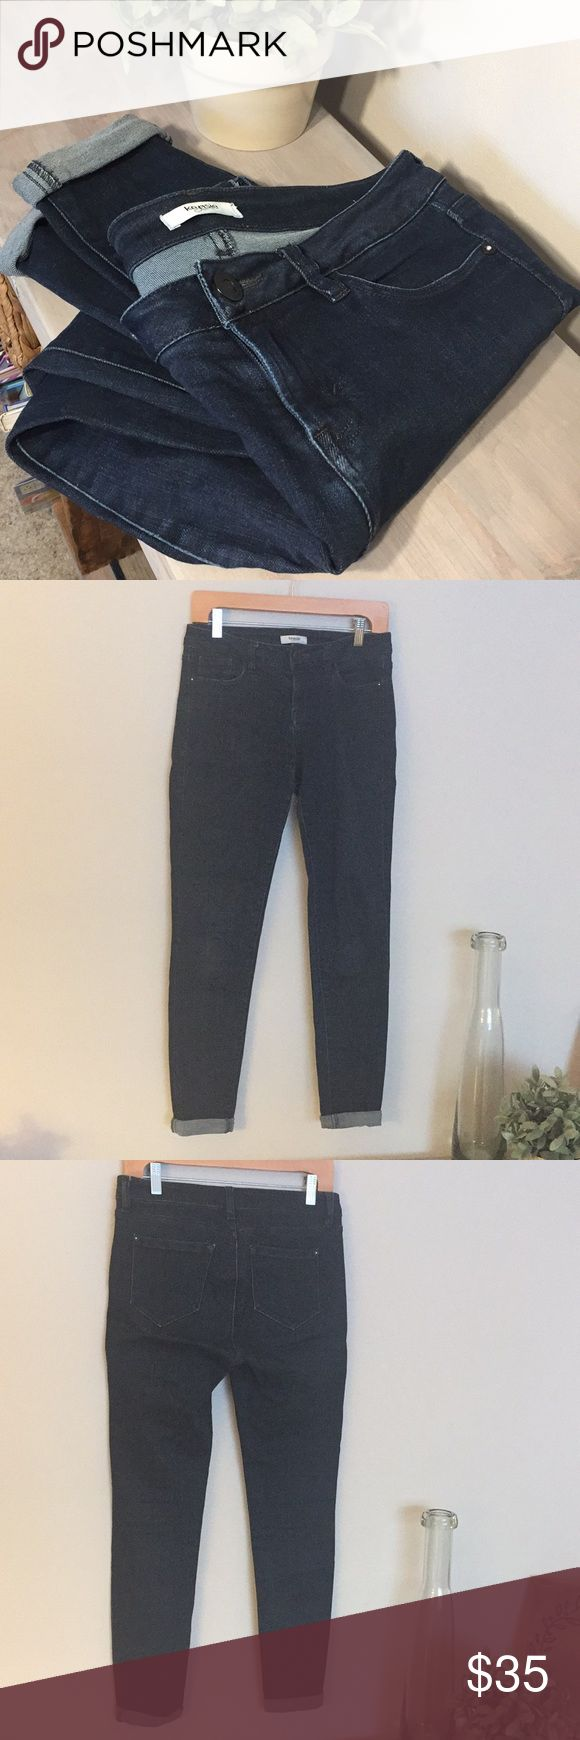 "Kensie Jeans dark wash skinny jeans Dark wash Kensie brand skinny jeans. Size 27. Mid- high rise. Rolled cuff but can be unrolled for a longer length. Nice amount of stretch but holds their shape. 15.25"" across waist, 28"" inseam cuffed, 30"" uncuffed. Kensie Jeans Skinny"